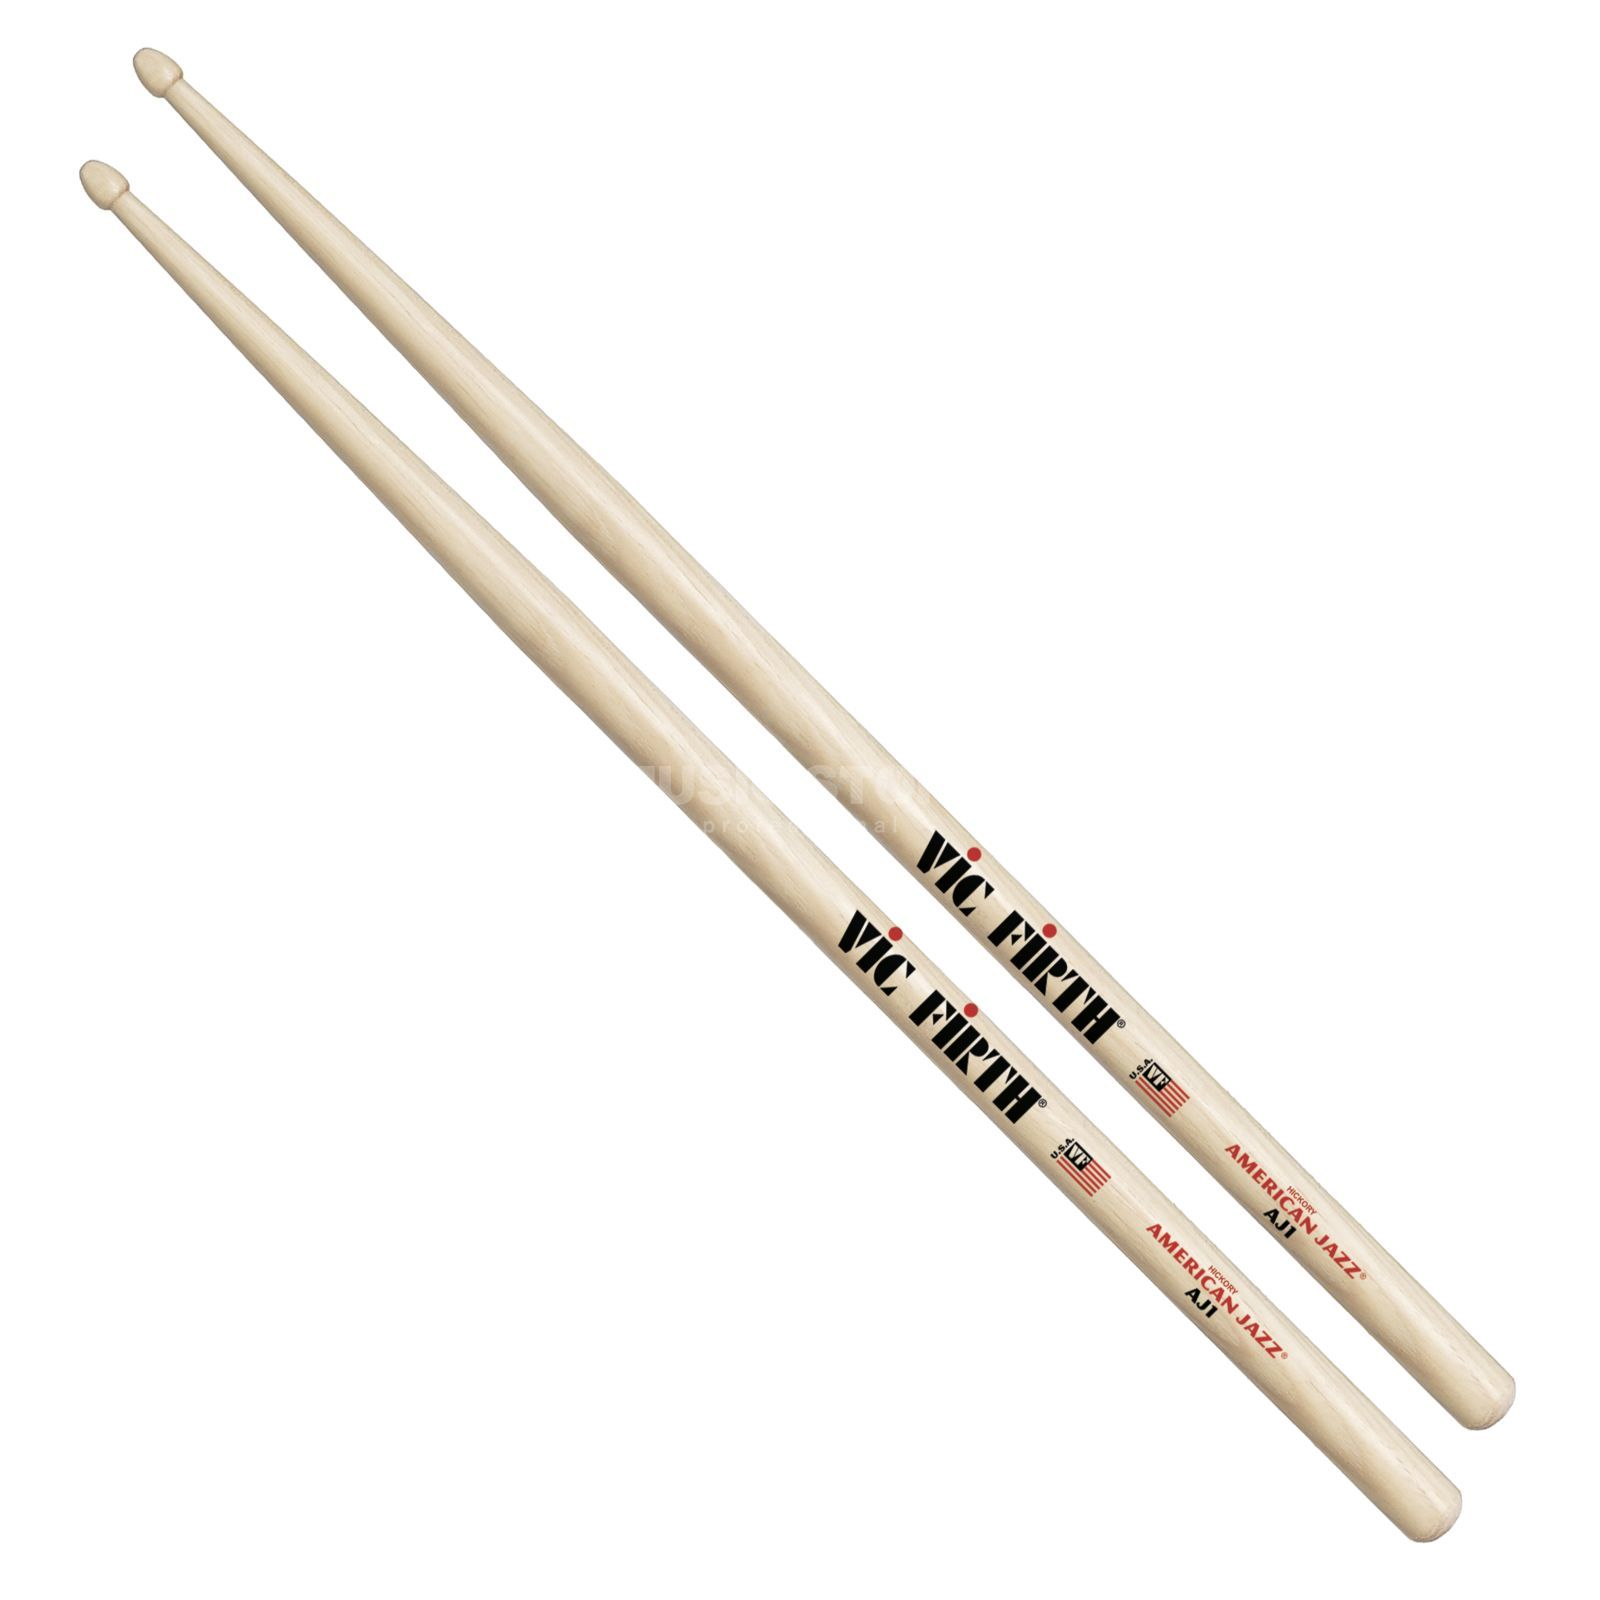 Vic-Firth AJ1 Sticks, American Jazz, Wood Tip Productafbeelding